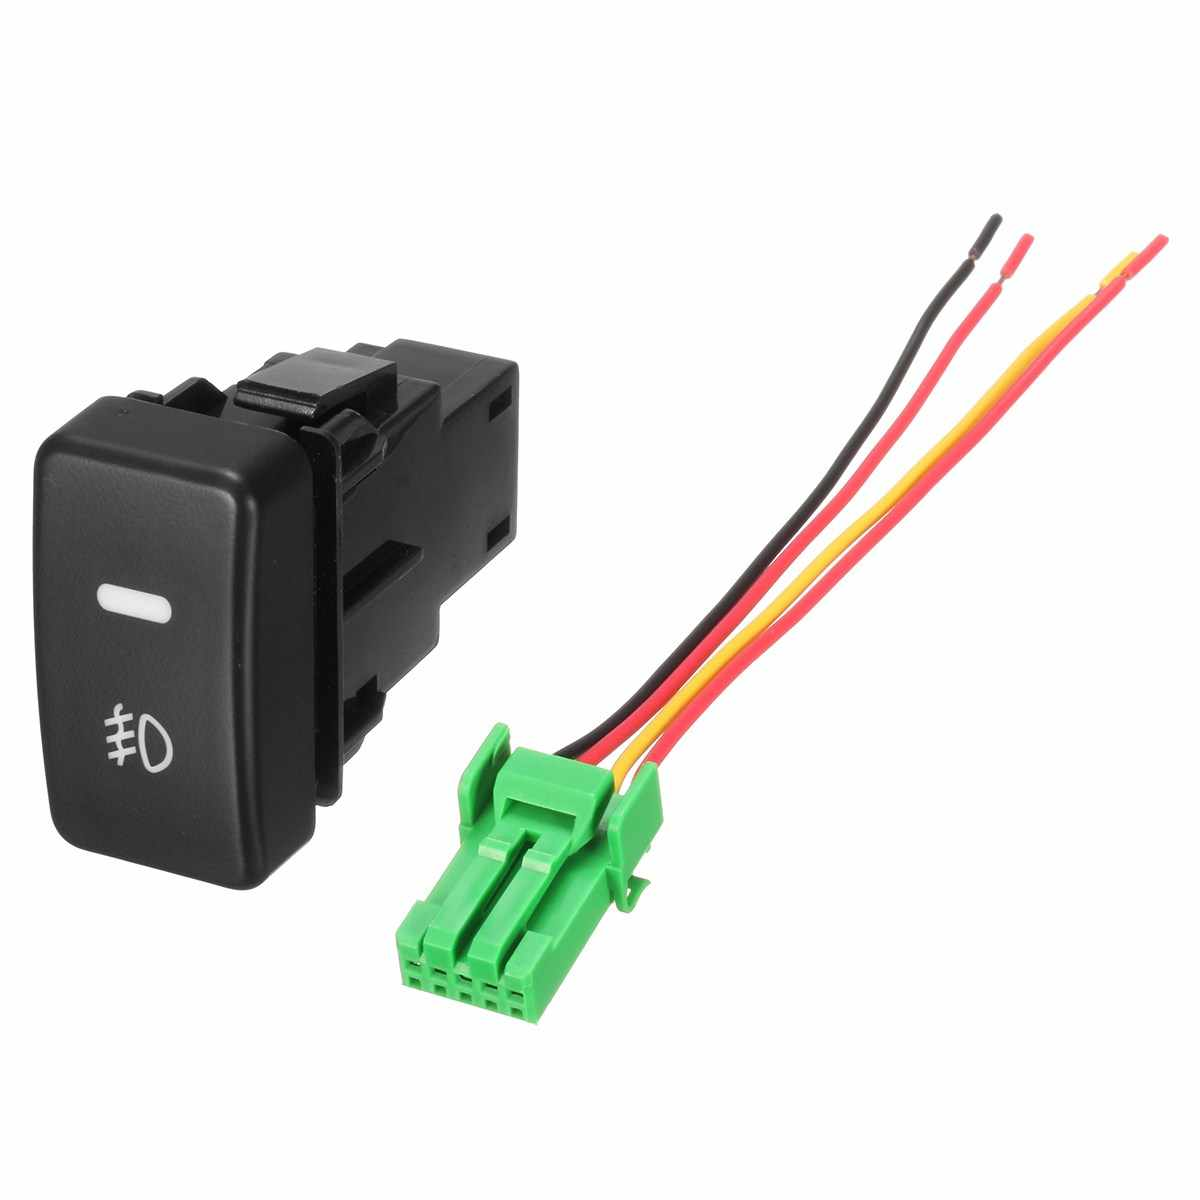 5 Pin LED Car Push Button Fog Light Switch wire For Honda /Civic /Accord  /CRV Fit